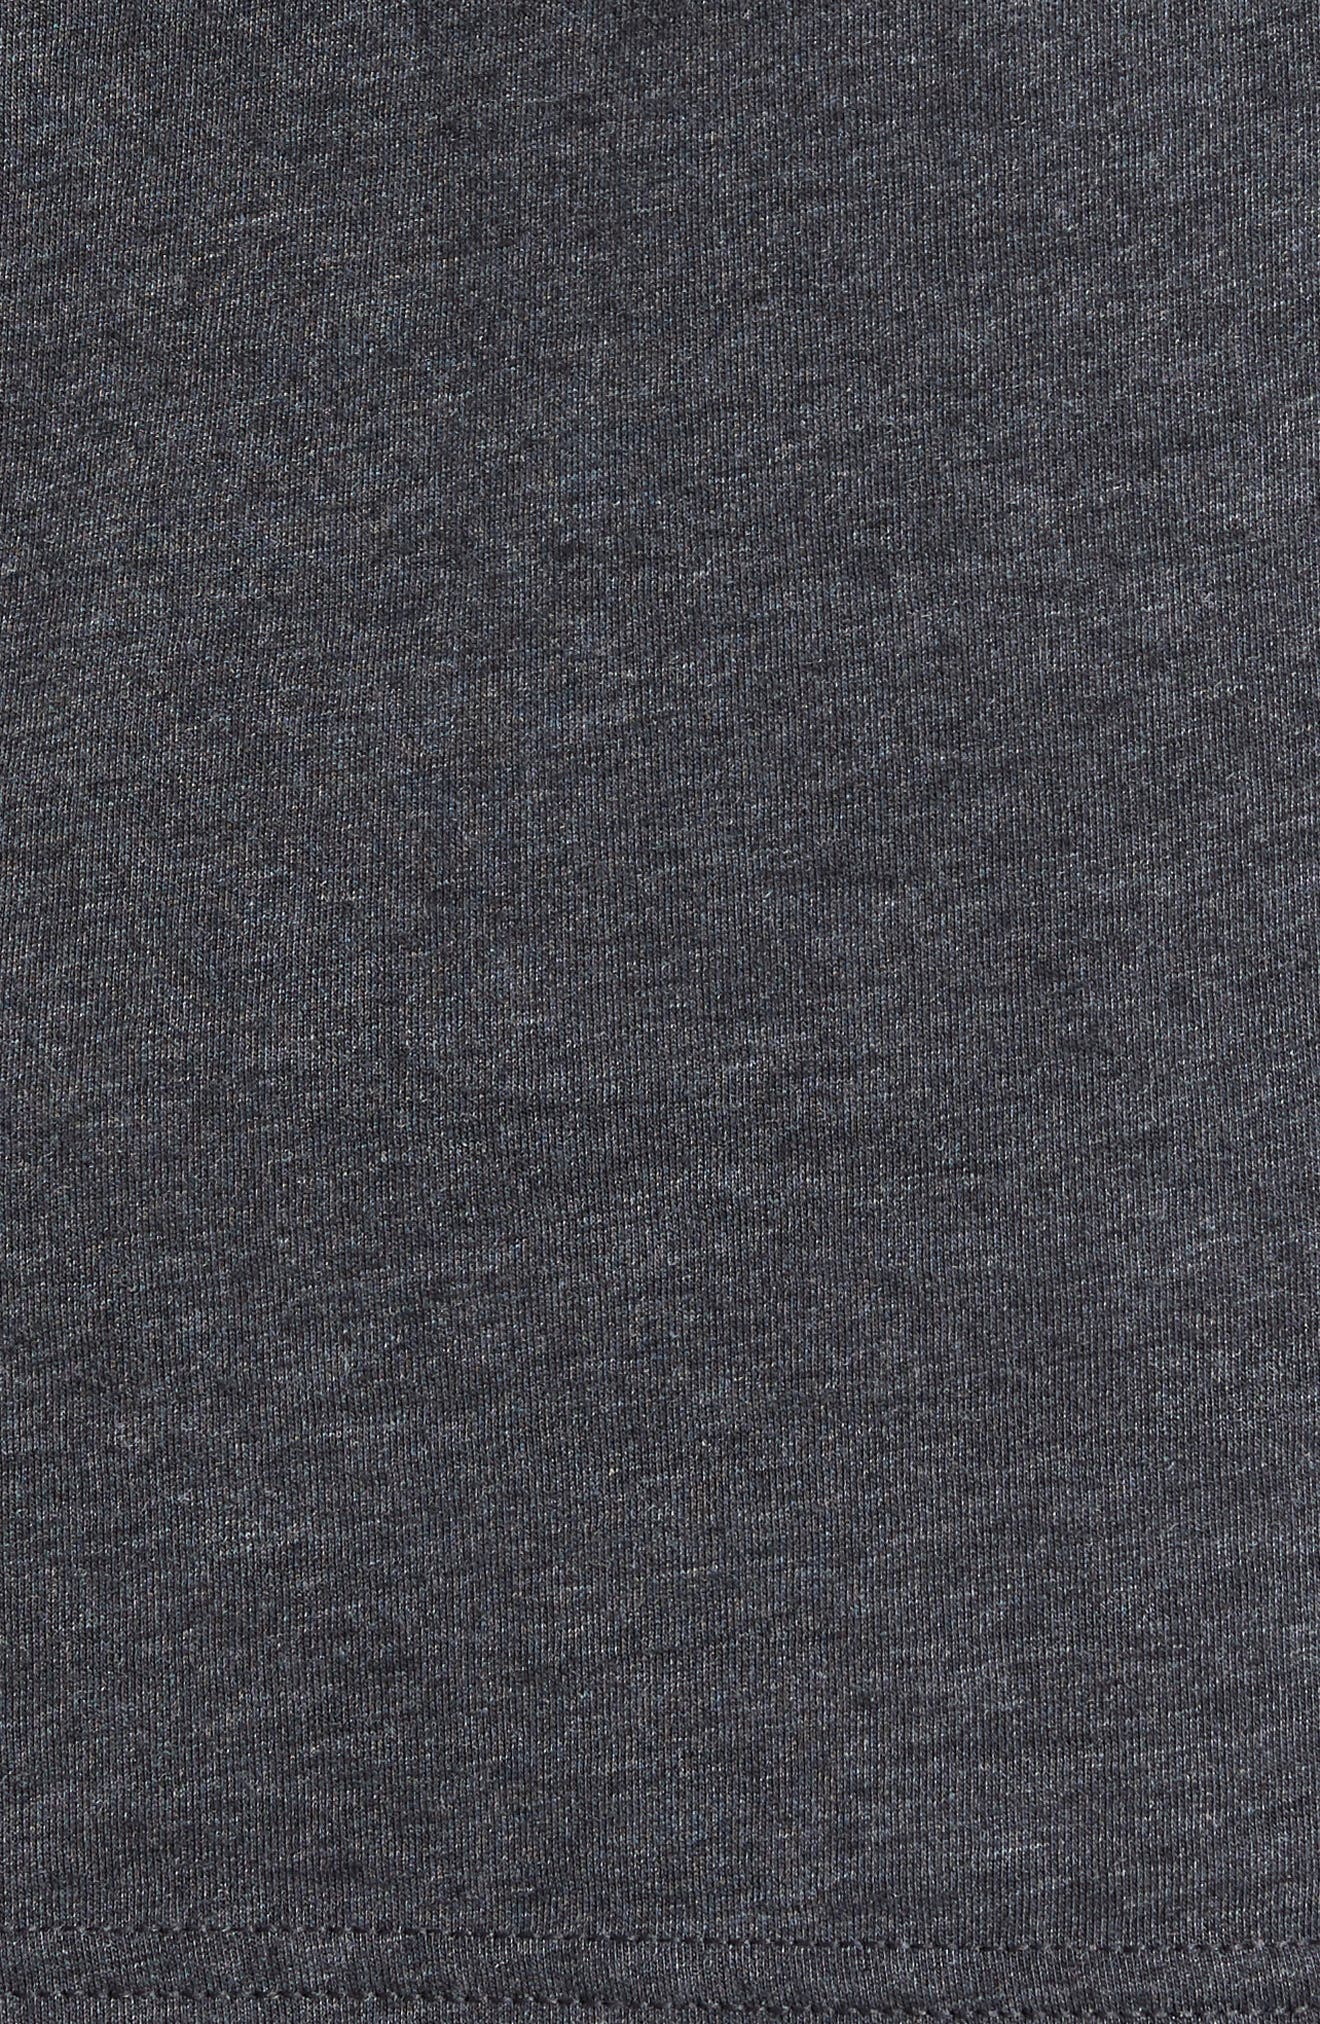 Portugal Jersey T-Shirt,                             Alternate thumbnail 5, color,                             Grey